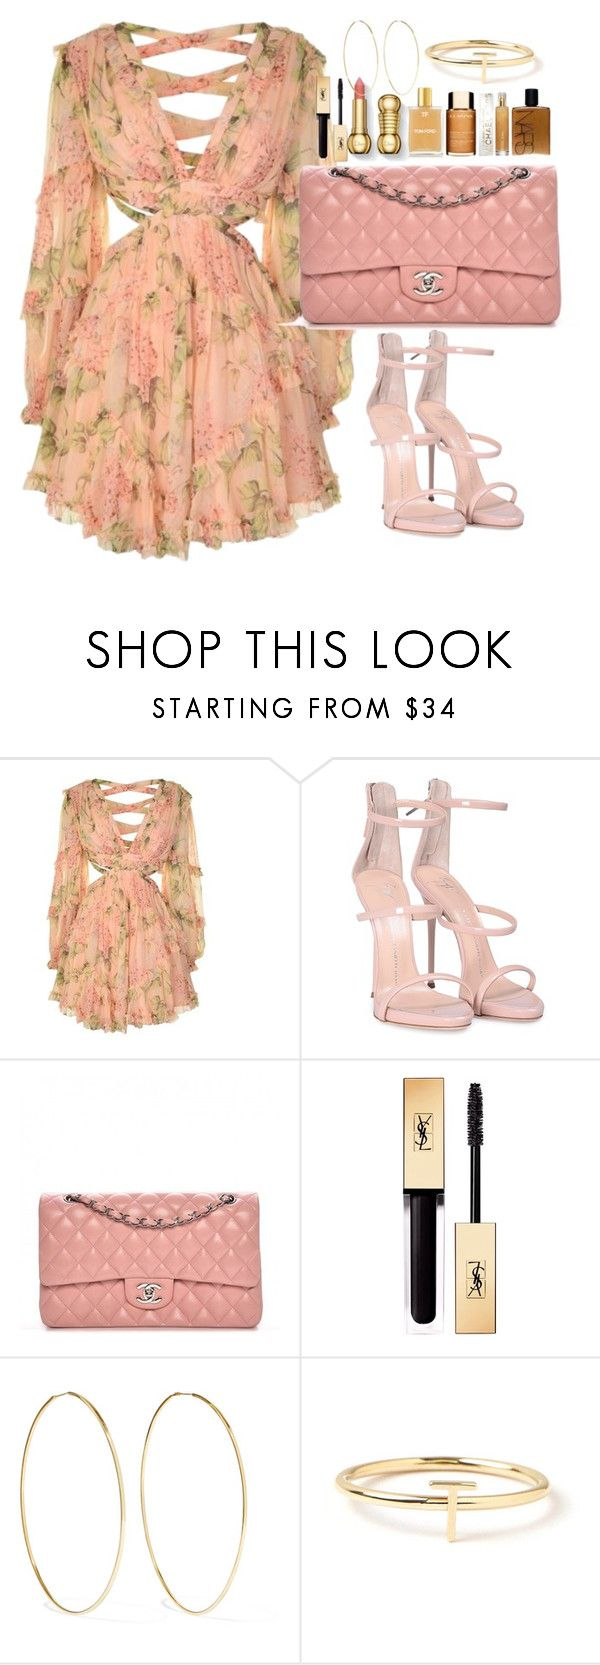 """Zimmermann"" by matousadiya on Polyvore featuring mode, Zimmermann, Giuseppe Zanotti, Chanel, Yves Saint Laurent, Magda Butrym et Maya Brenner Designs"